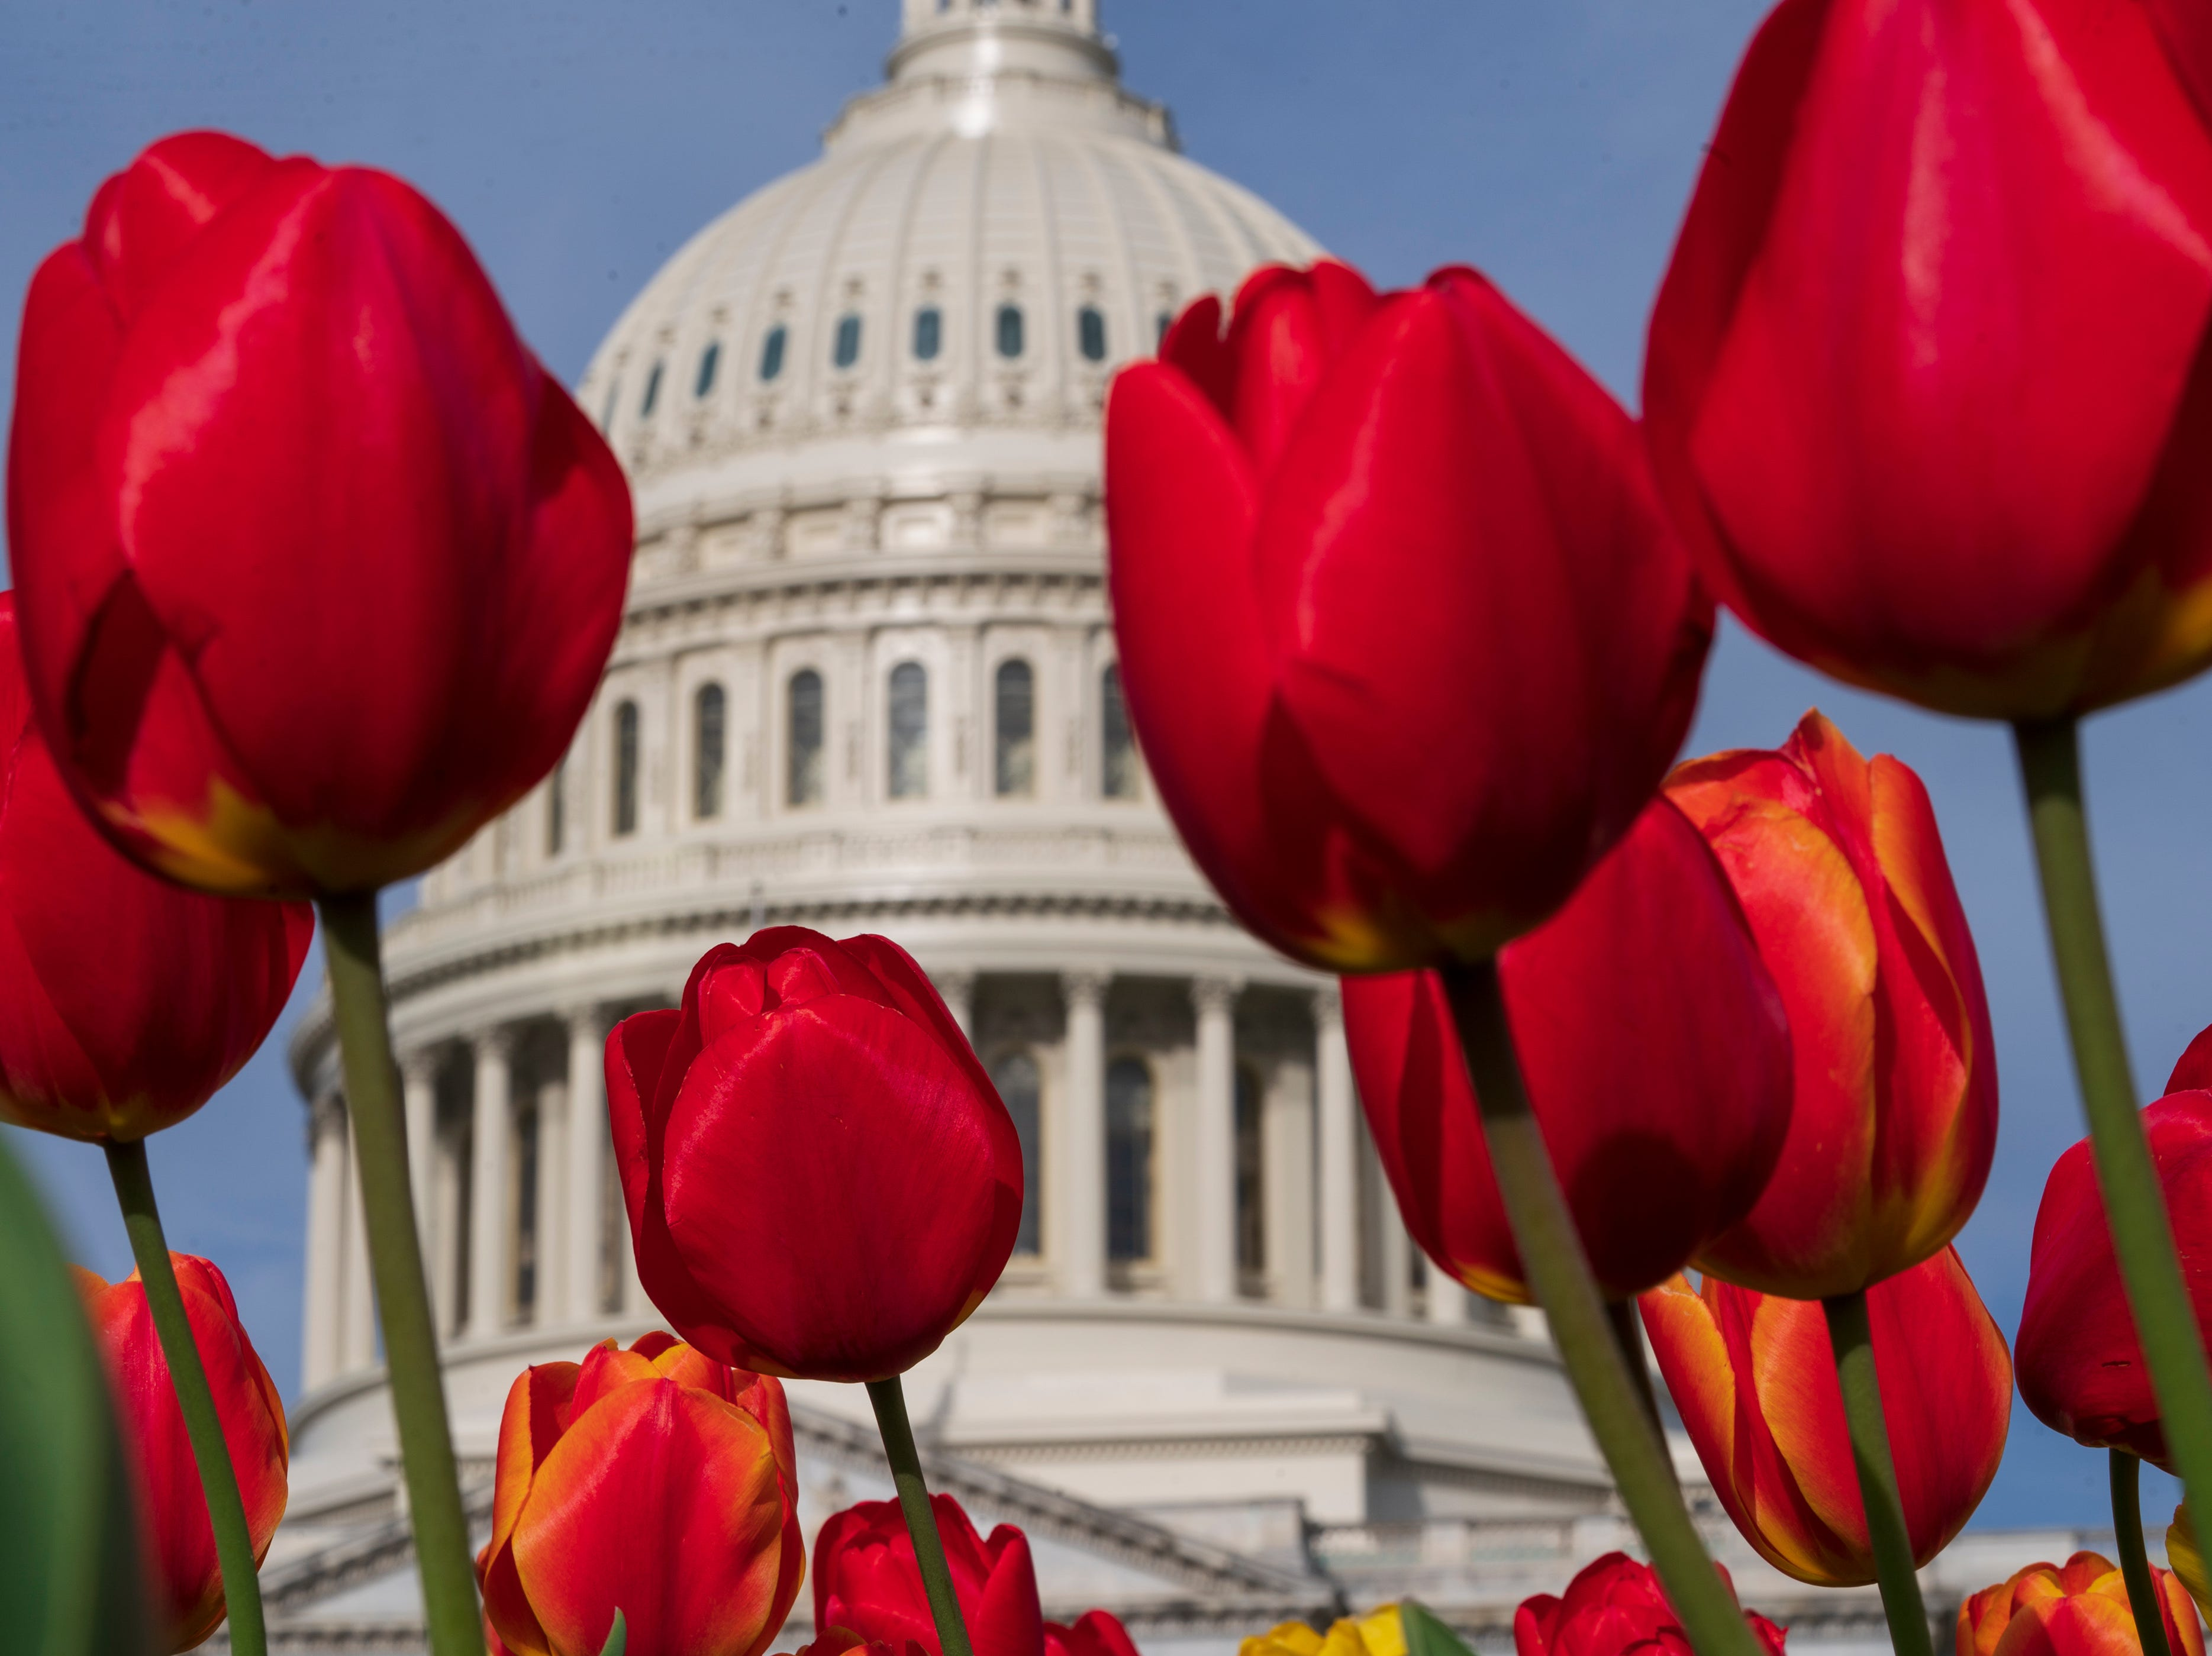 Tulips bloom at the Capitol in Washington, Tuesday, April 16, 2019, as Congress is away on a two week district work period.